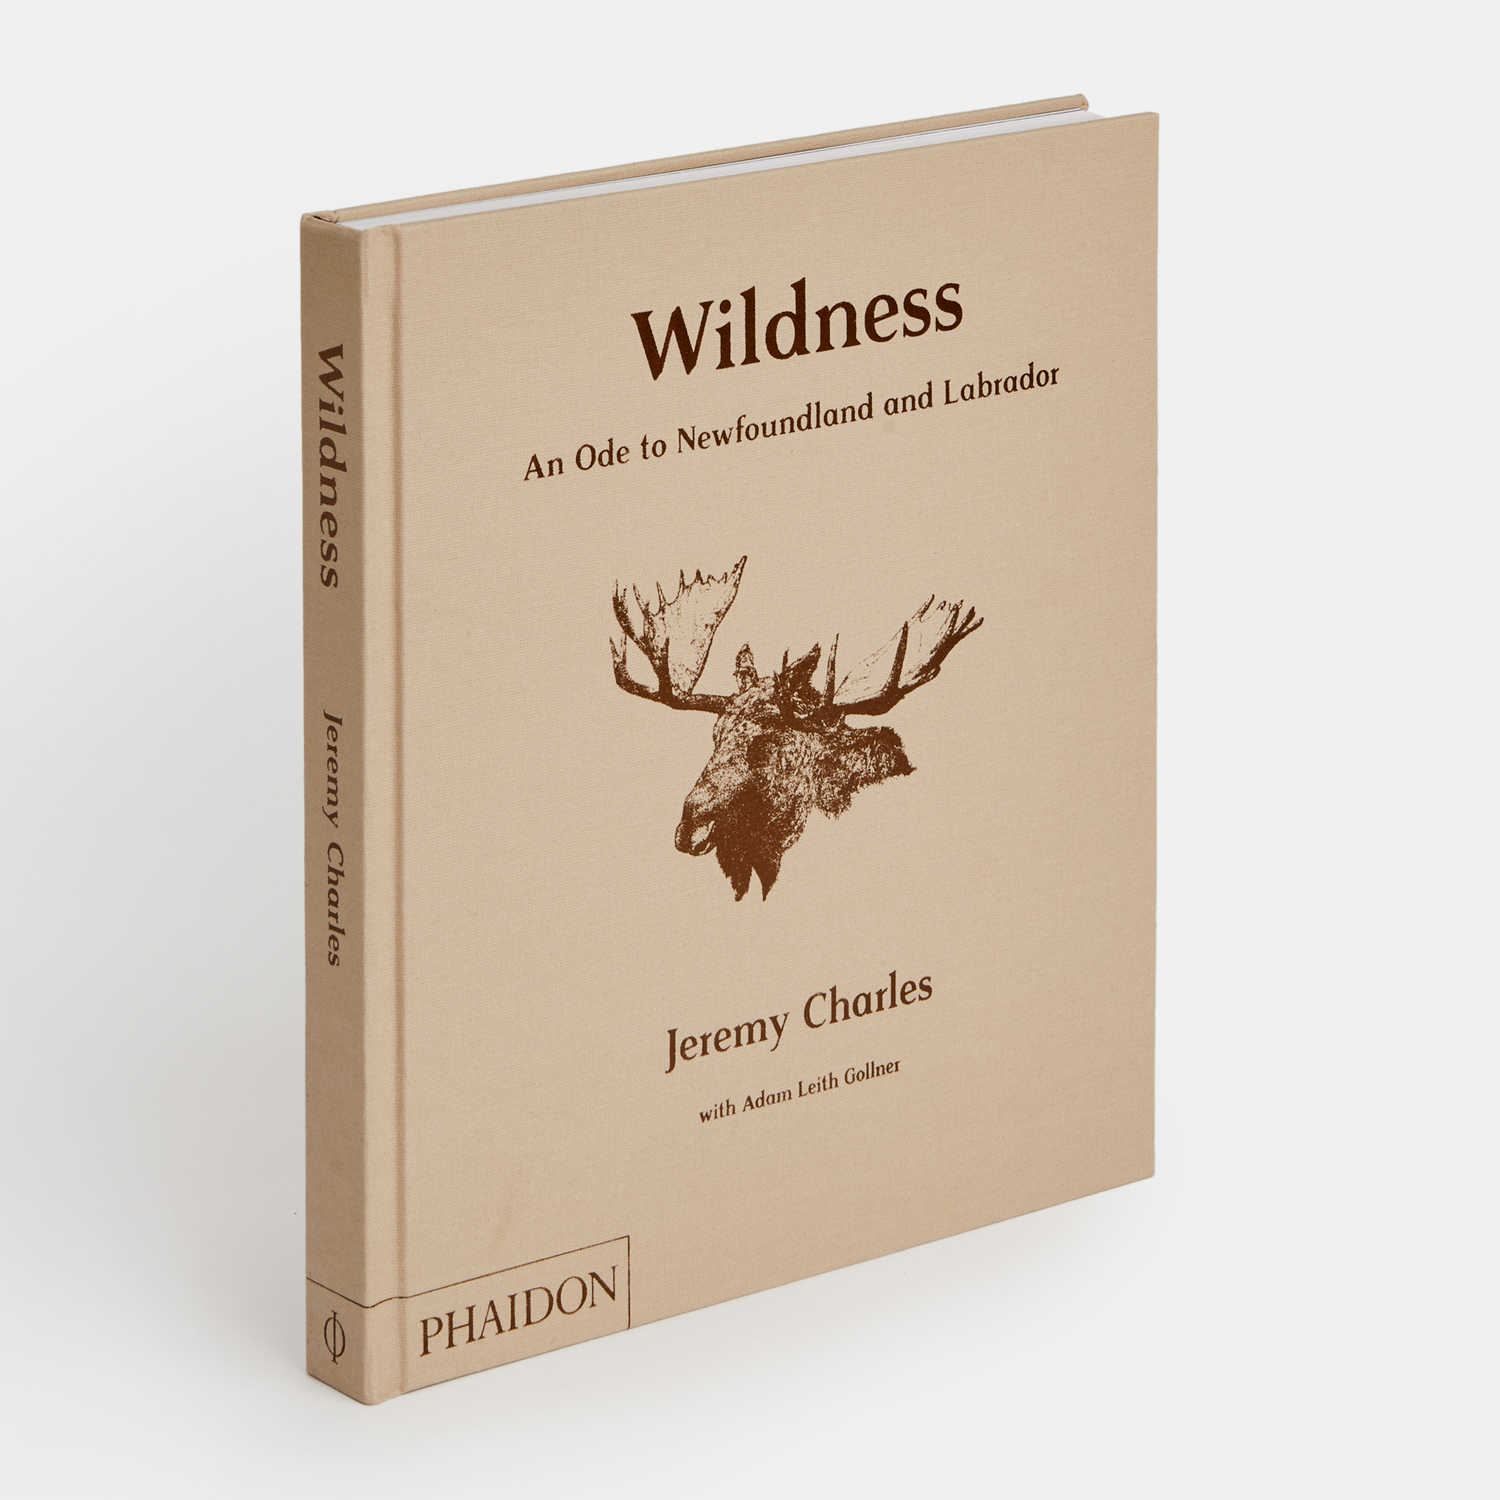 Wildness by Jeremy Charles